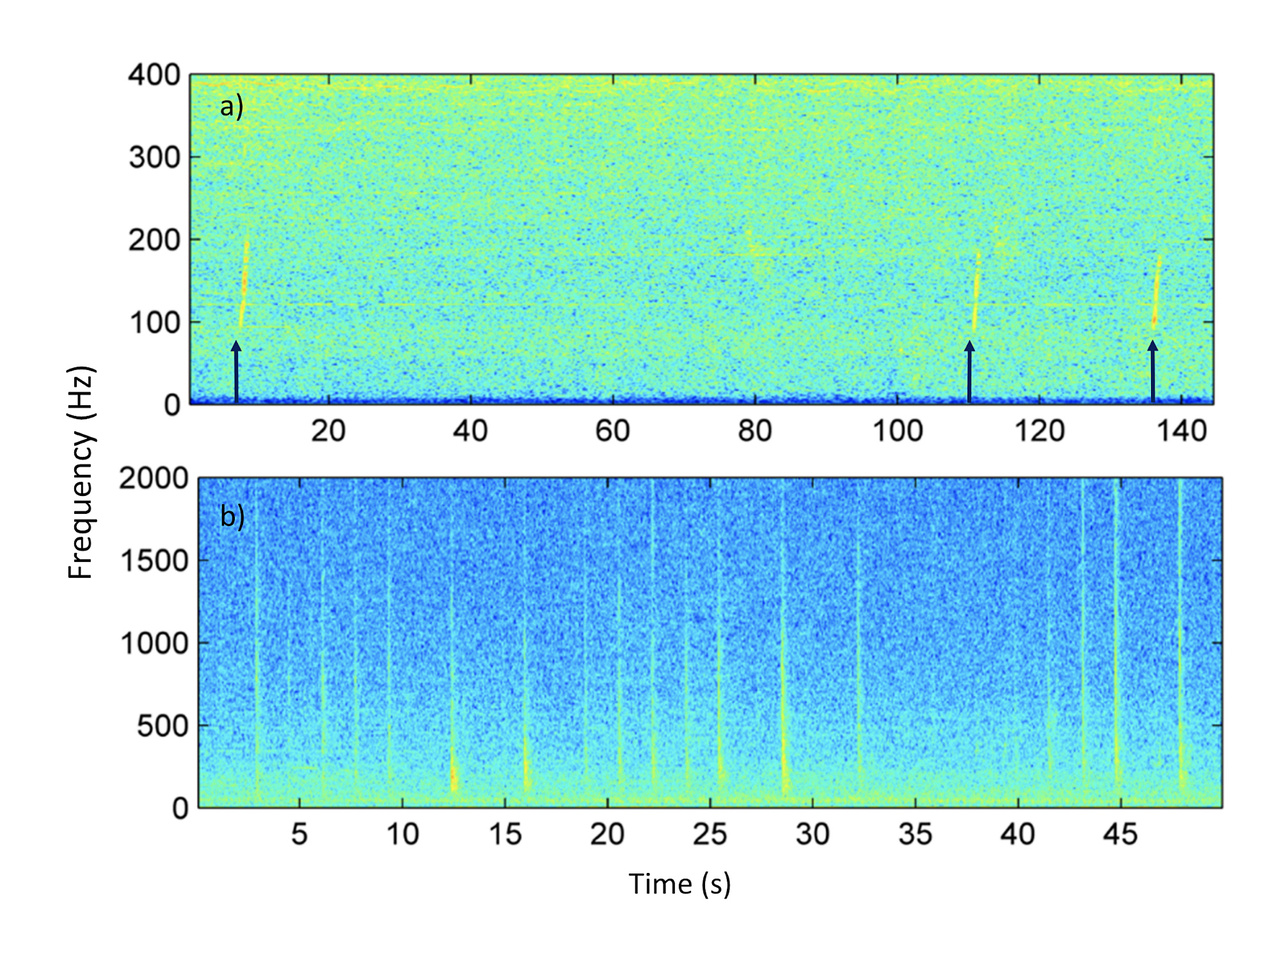 Spectrogram showing North Pacific right whale upcalls (top panel, indicated with arrow), and gunshot calls (bottom panel) from acoustic recordings in Unimak Pass.